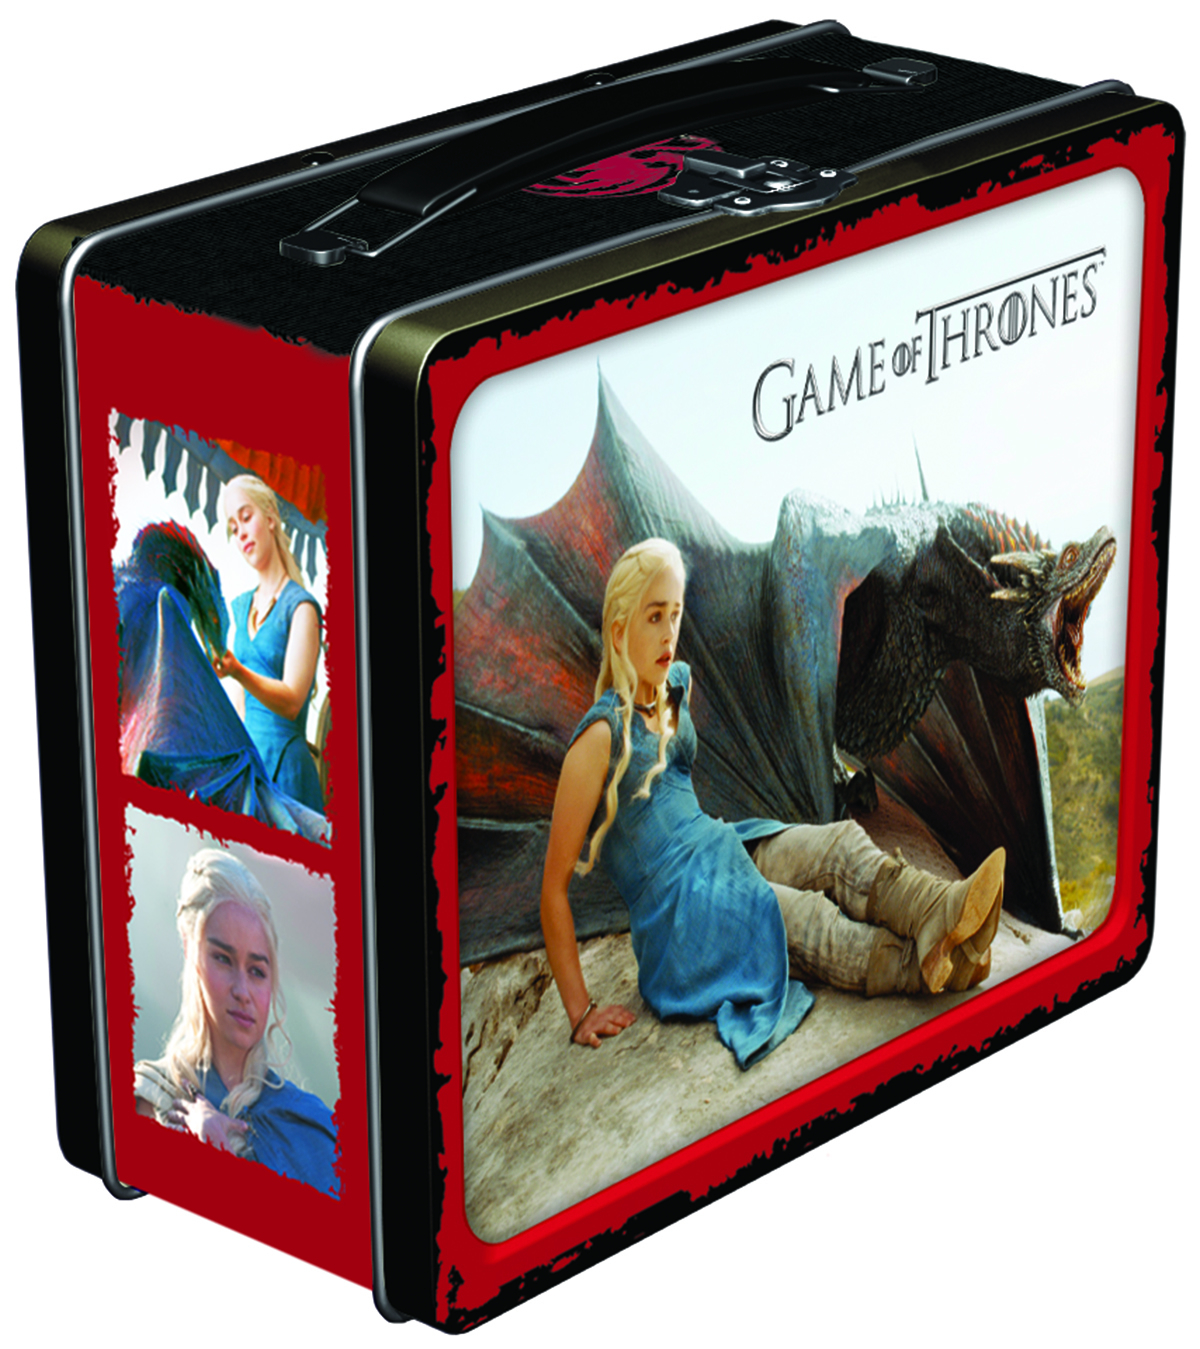 GAME OF THRONES LUNCHBOX DAENERYS TARGARYEN